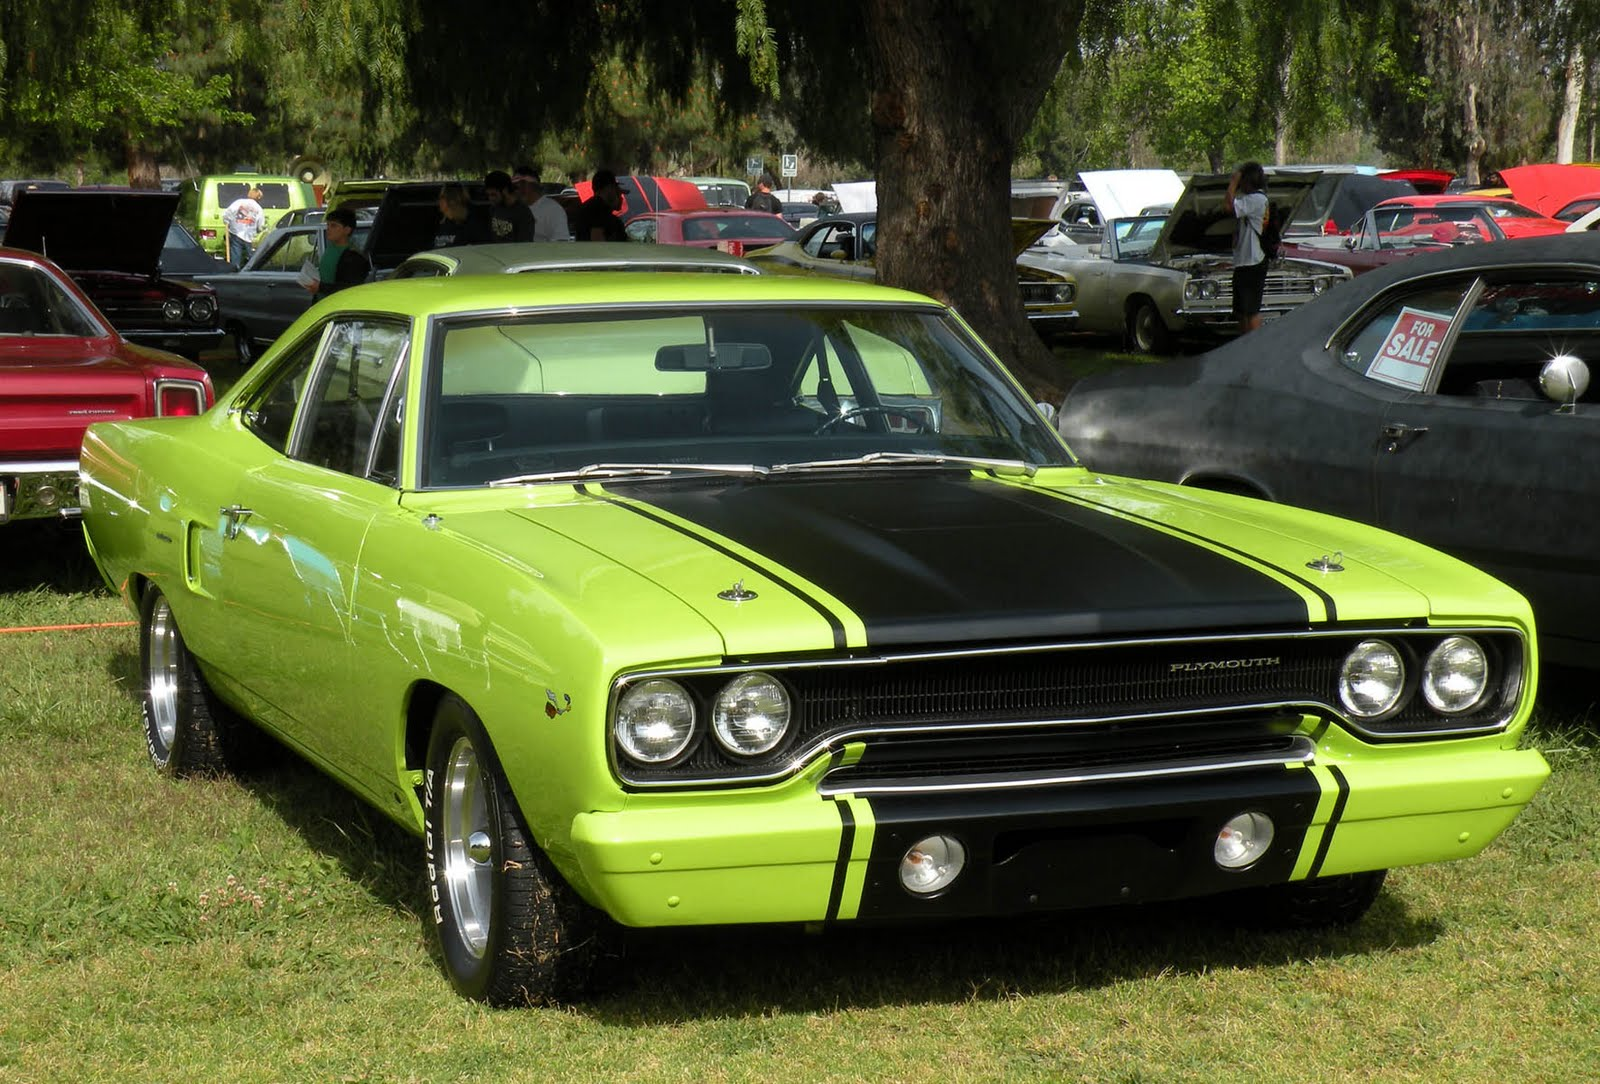 1970 Chevrolet Chevelle Ss 454 Ls6 Chevelle Ss 396 further 288019338640130457 furthermore 2017 Suzuki Sportbikes further Photo 02 further Bicycle Ch ion Peter Sagan Builds 1970 Dodge Charger His Dreams. on classic muscle cars plymouth